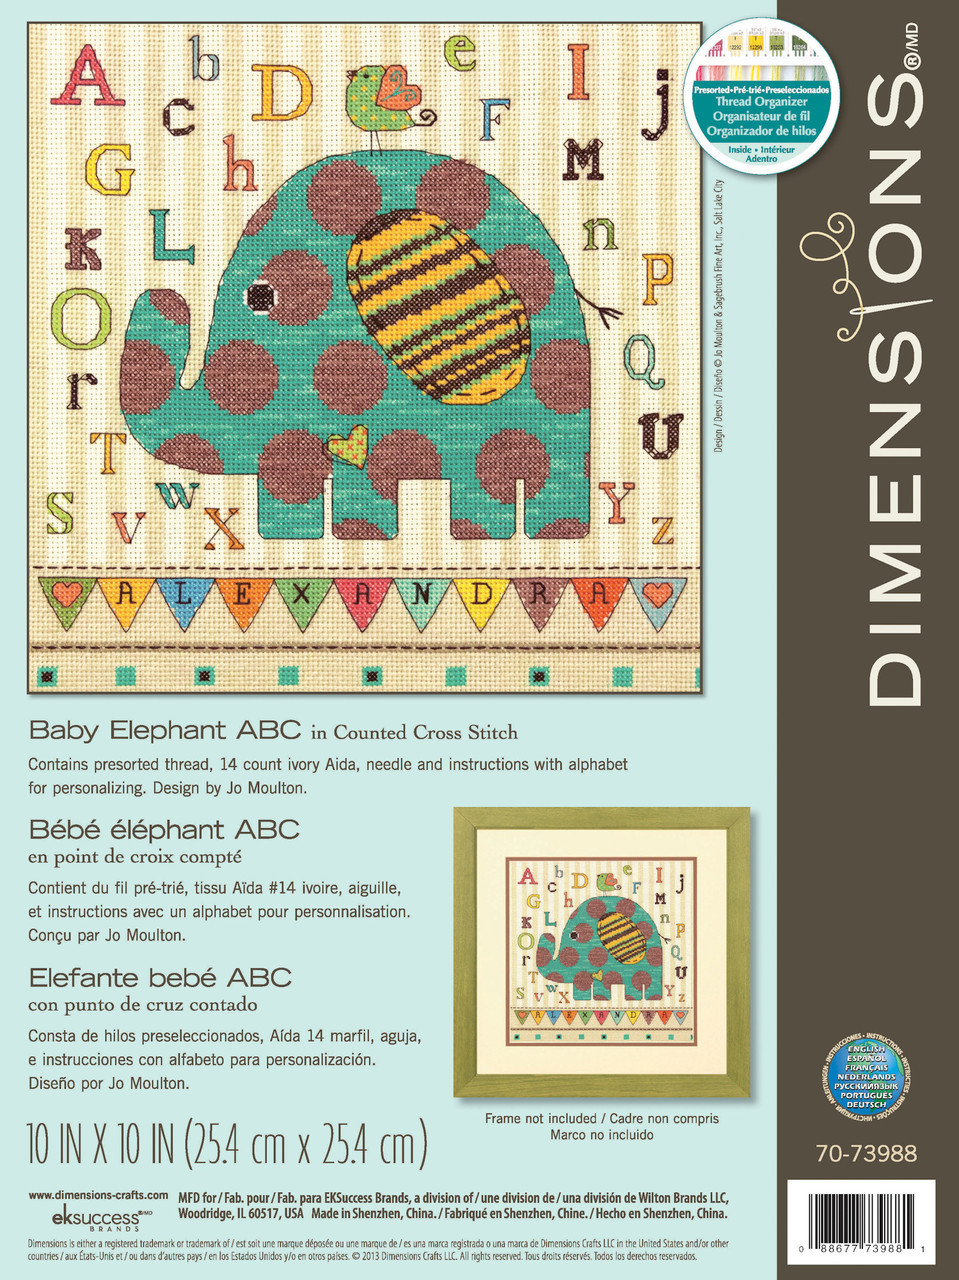 Dimensions - Baby Elephant ABC